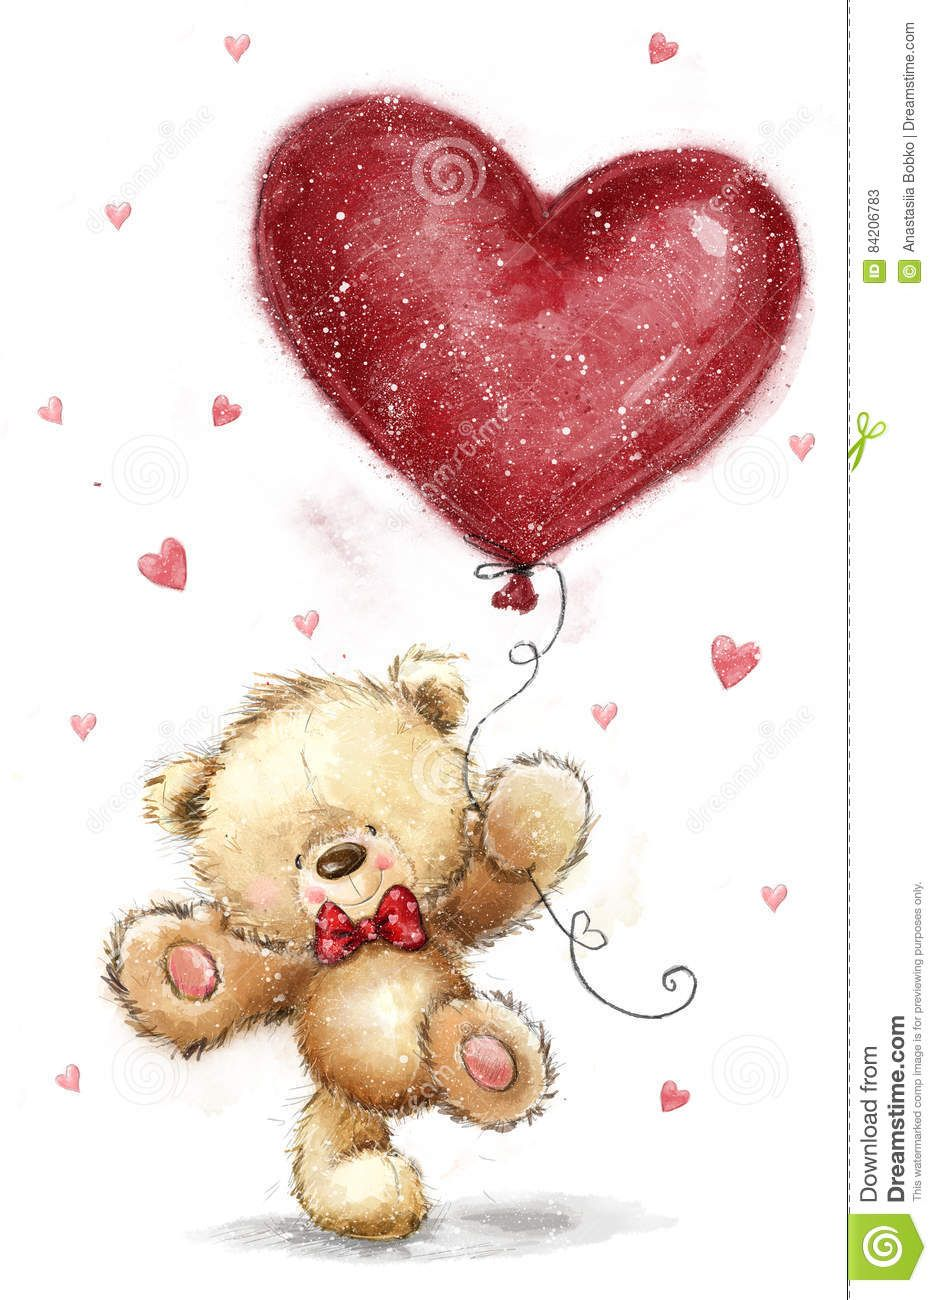 Cute Bear With Big Red Heart Love Design Valentines Day Postcard Download From Over 67 Millio Valentines Day Drawing Teddy Bear Drawing Teddy Bear Pictures